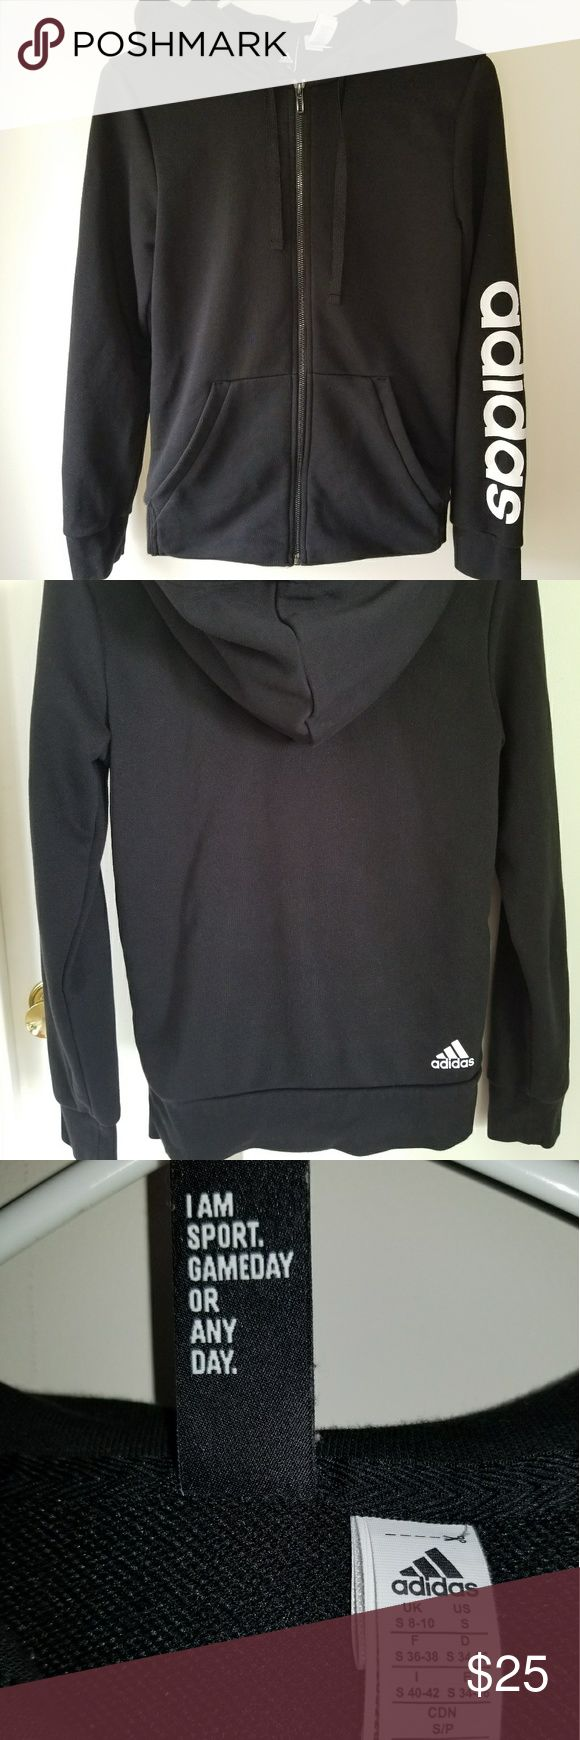 ADIDAS Zip up Size Small pre-owned Pre-owned, great condition. adidas Tops Sweatshirts & Hoodies